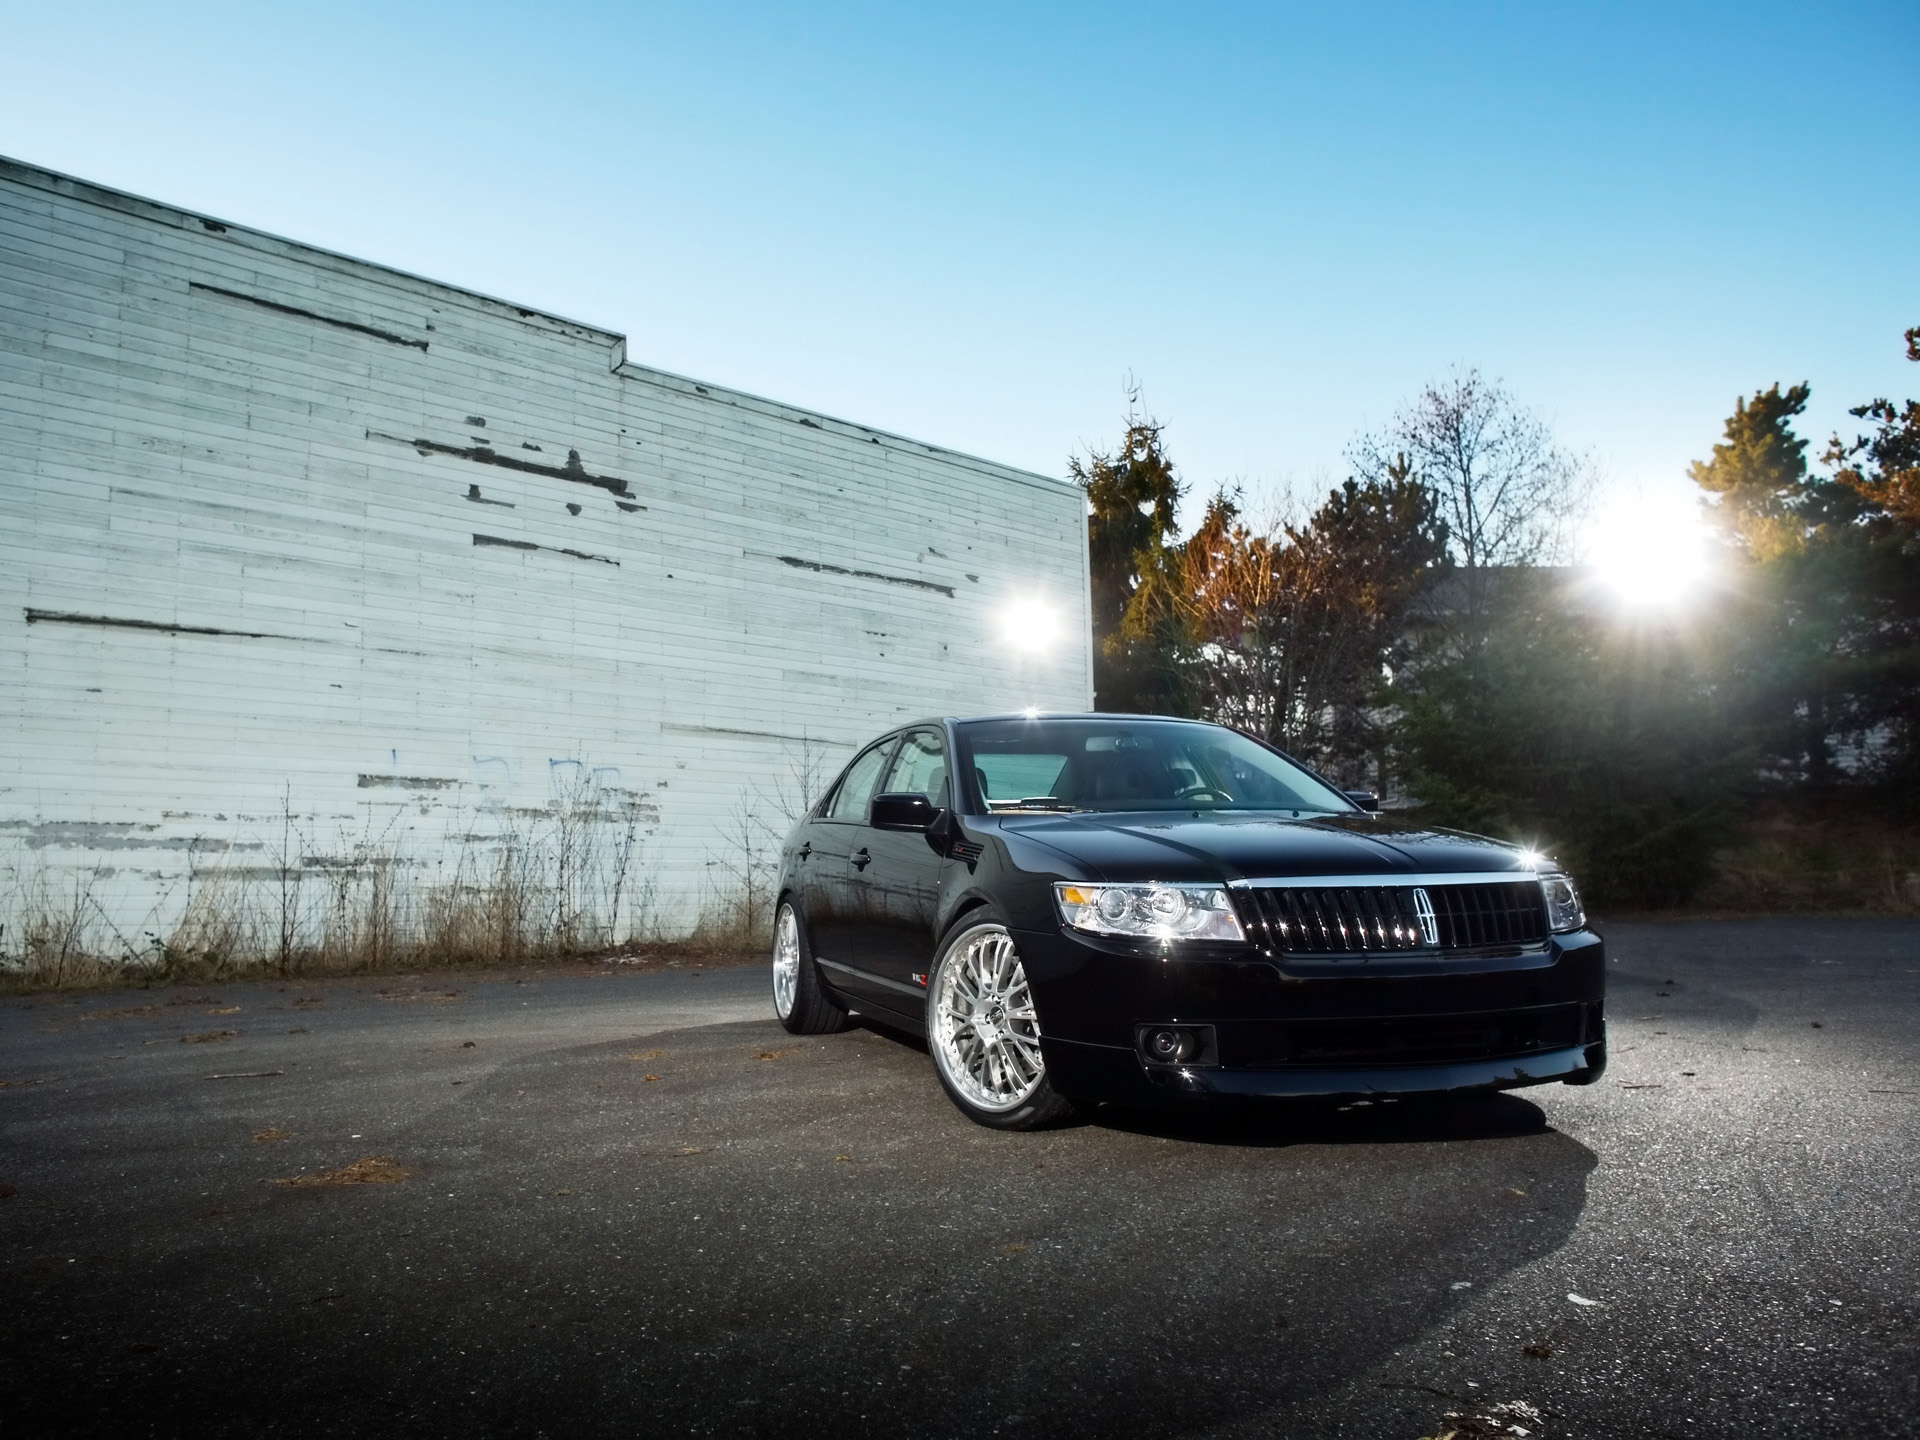 H&R Springs Lincoln MKZ Project photo 52236